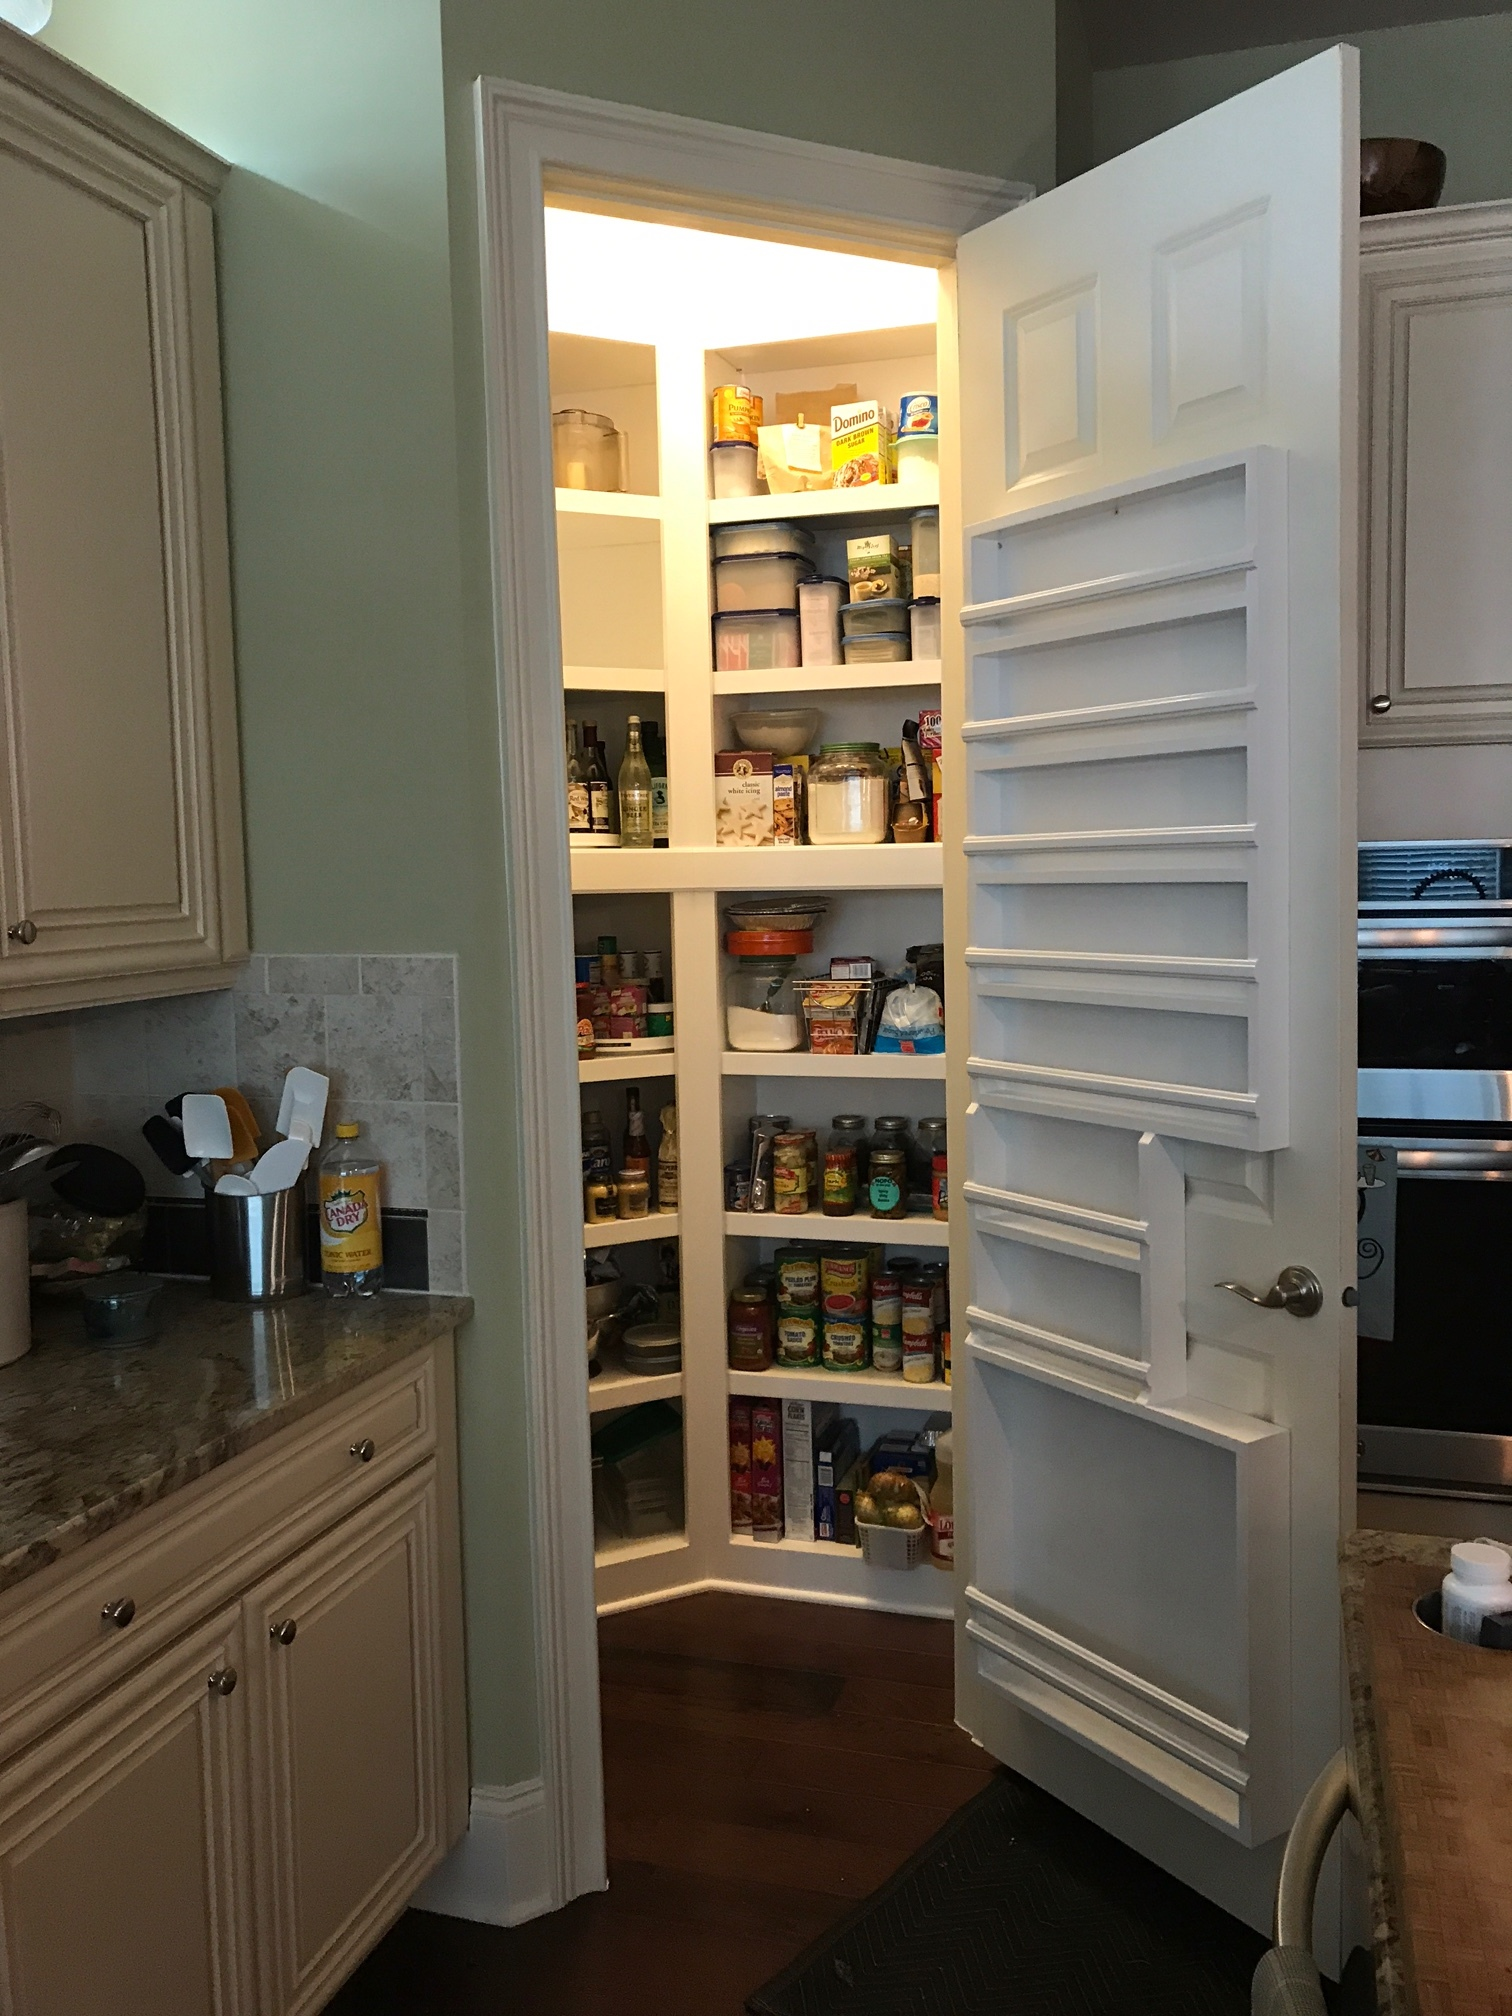 Kitchen Pantry with Door Spice Rack - After